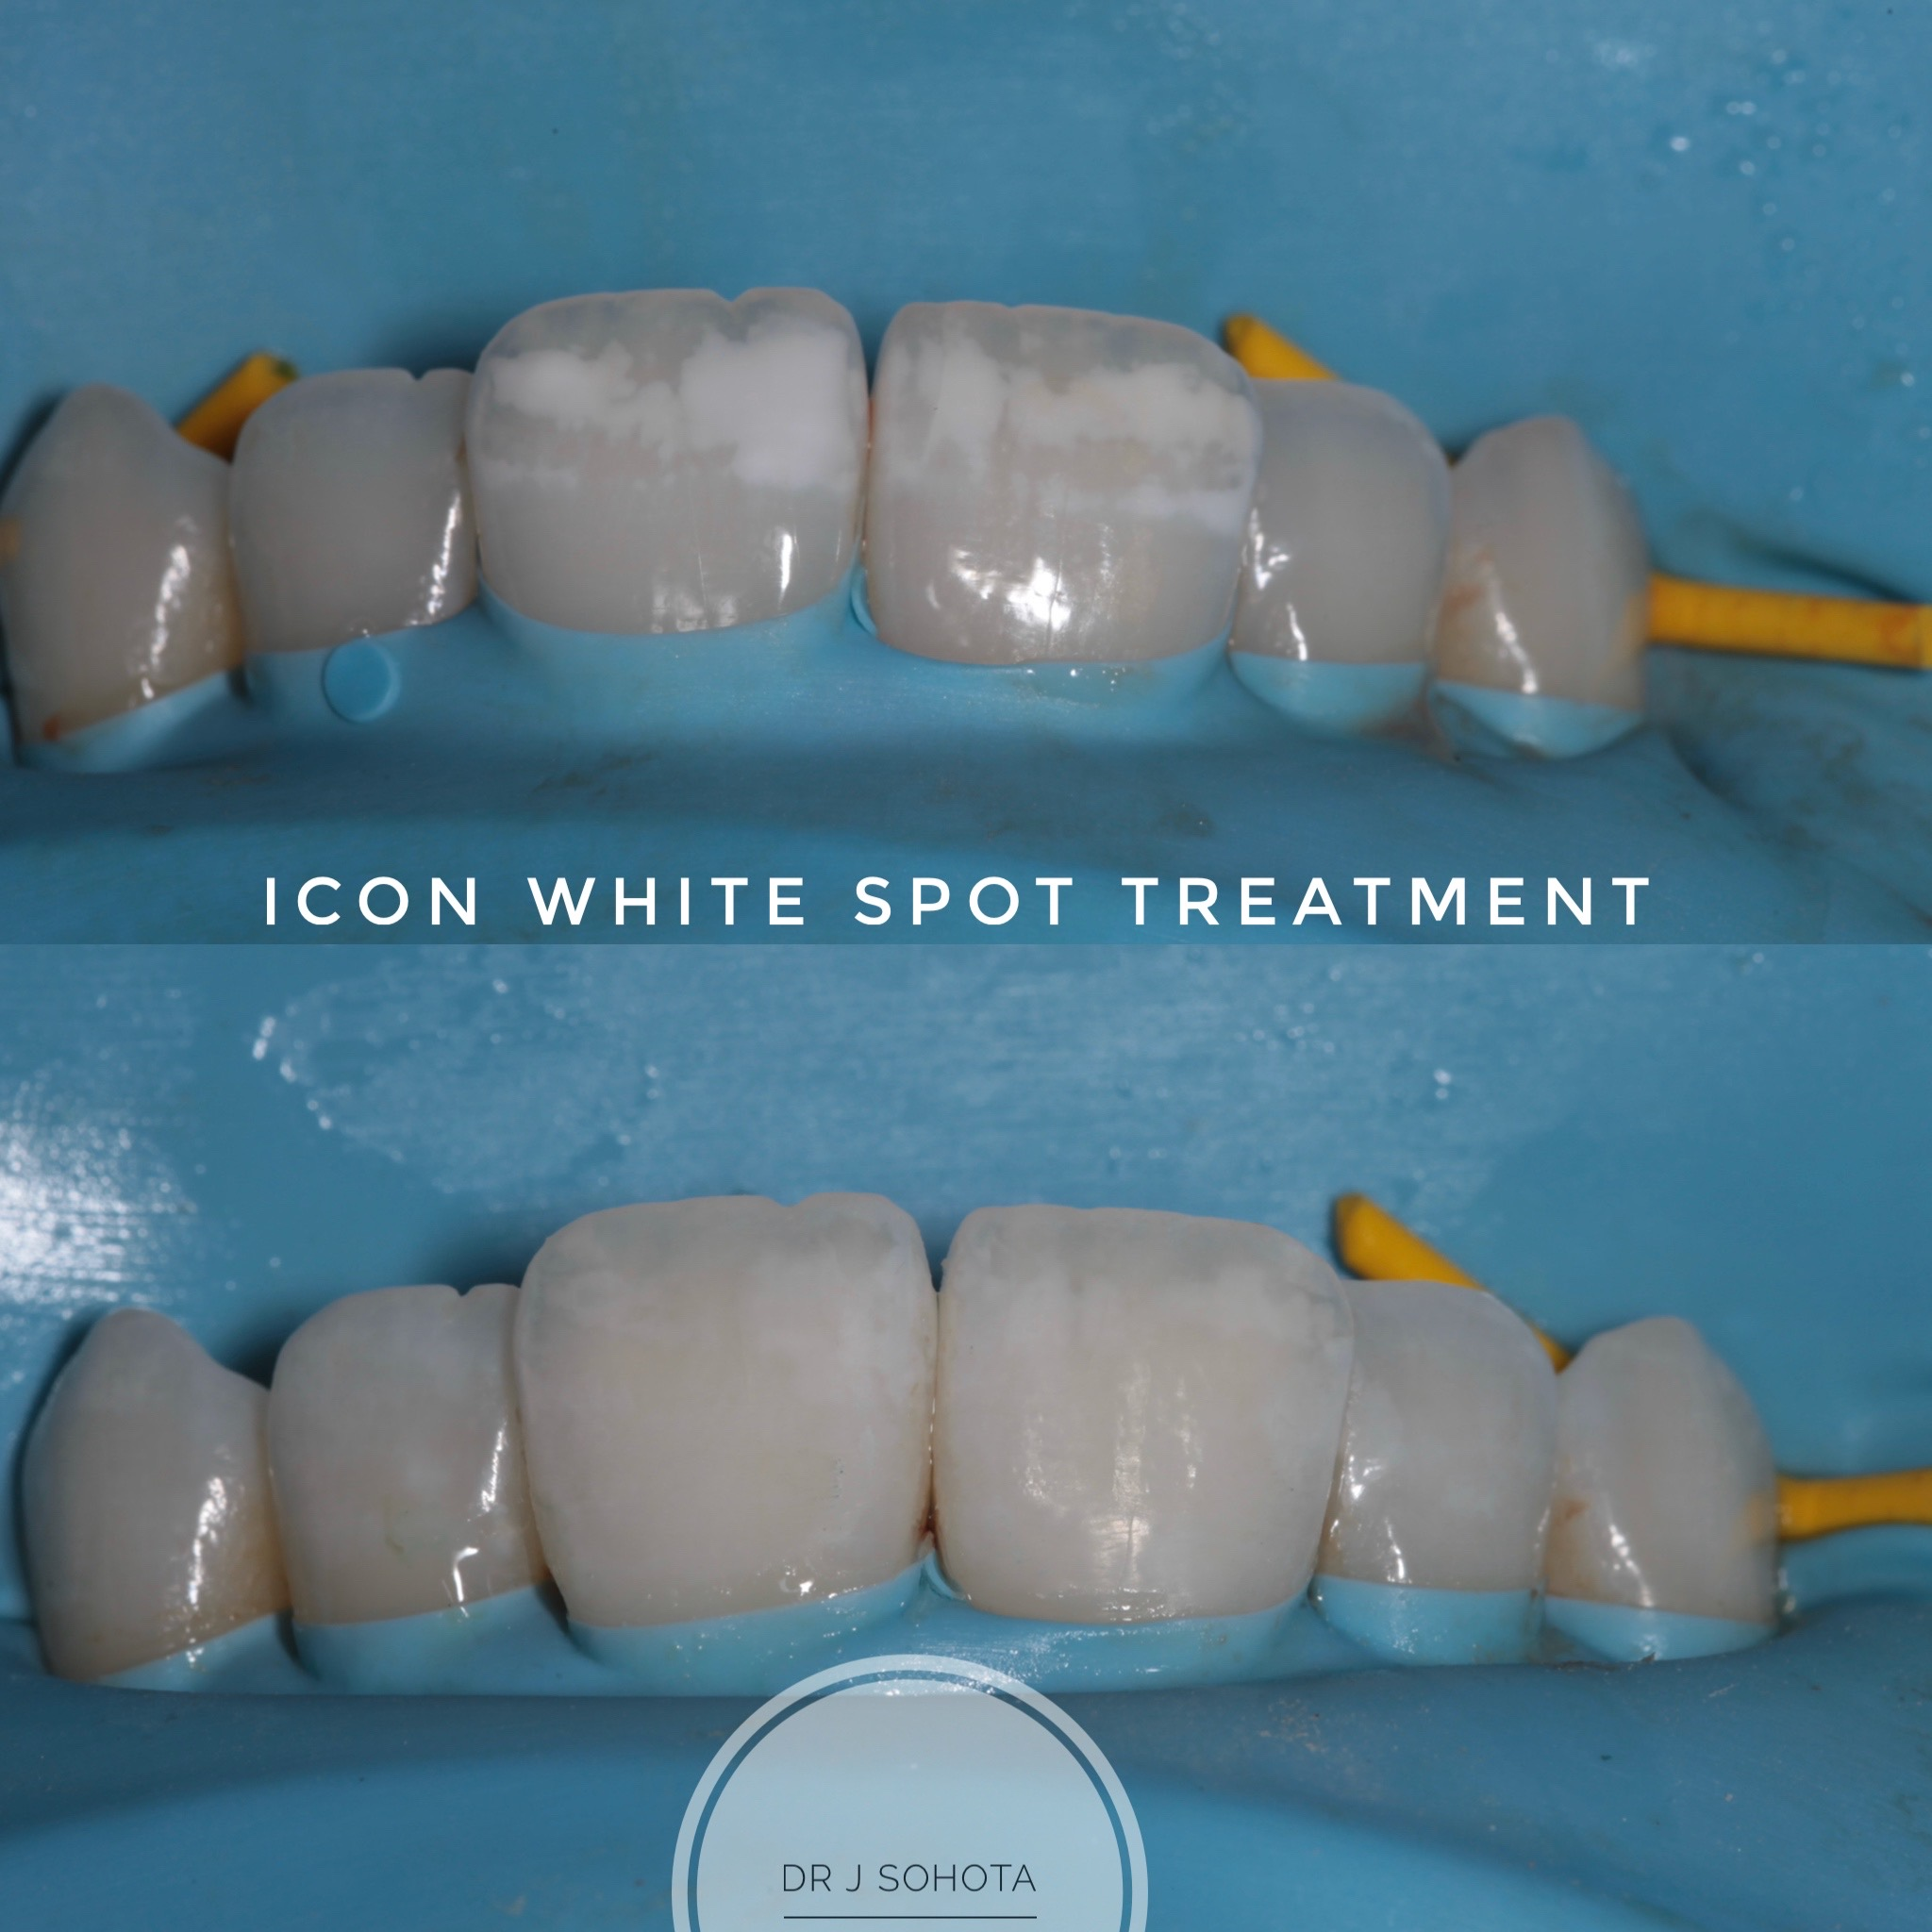 Icon white spot treatment before and after 2